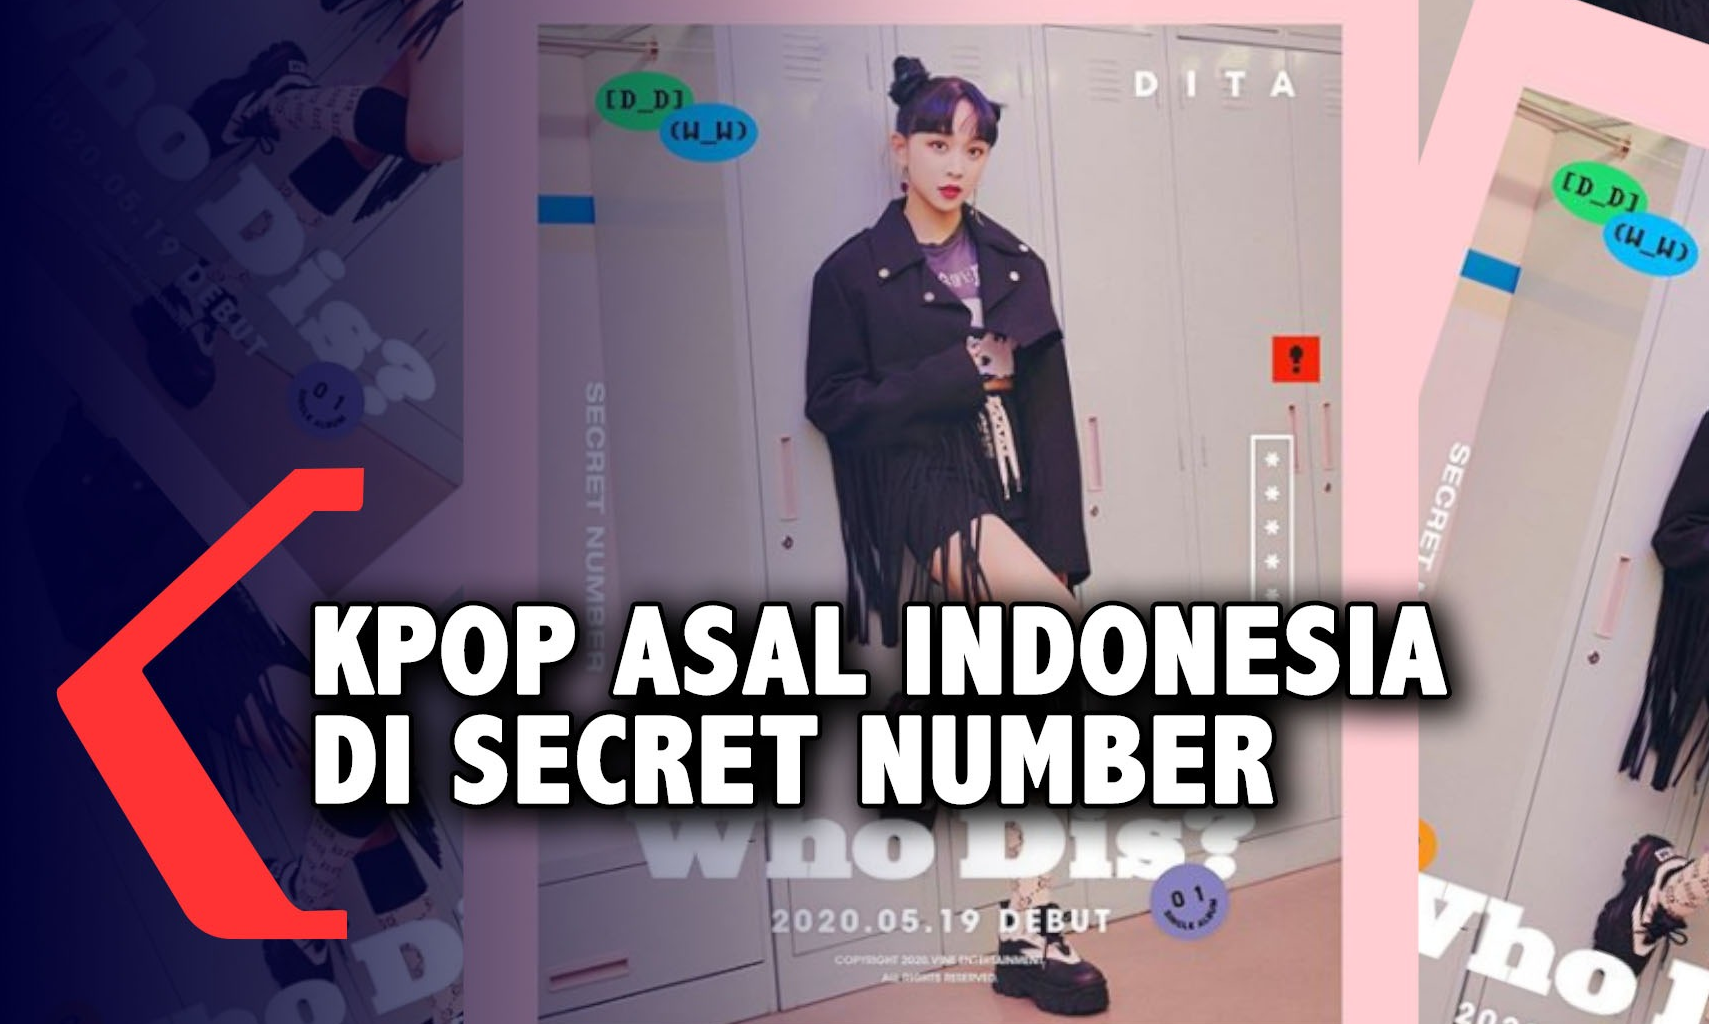 profil-dita-karang-idol-kpop-asal-indonesia-di-secret-number